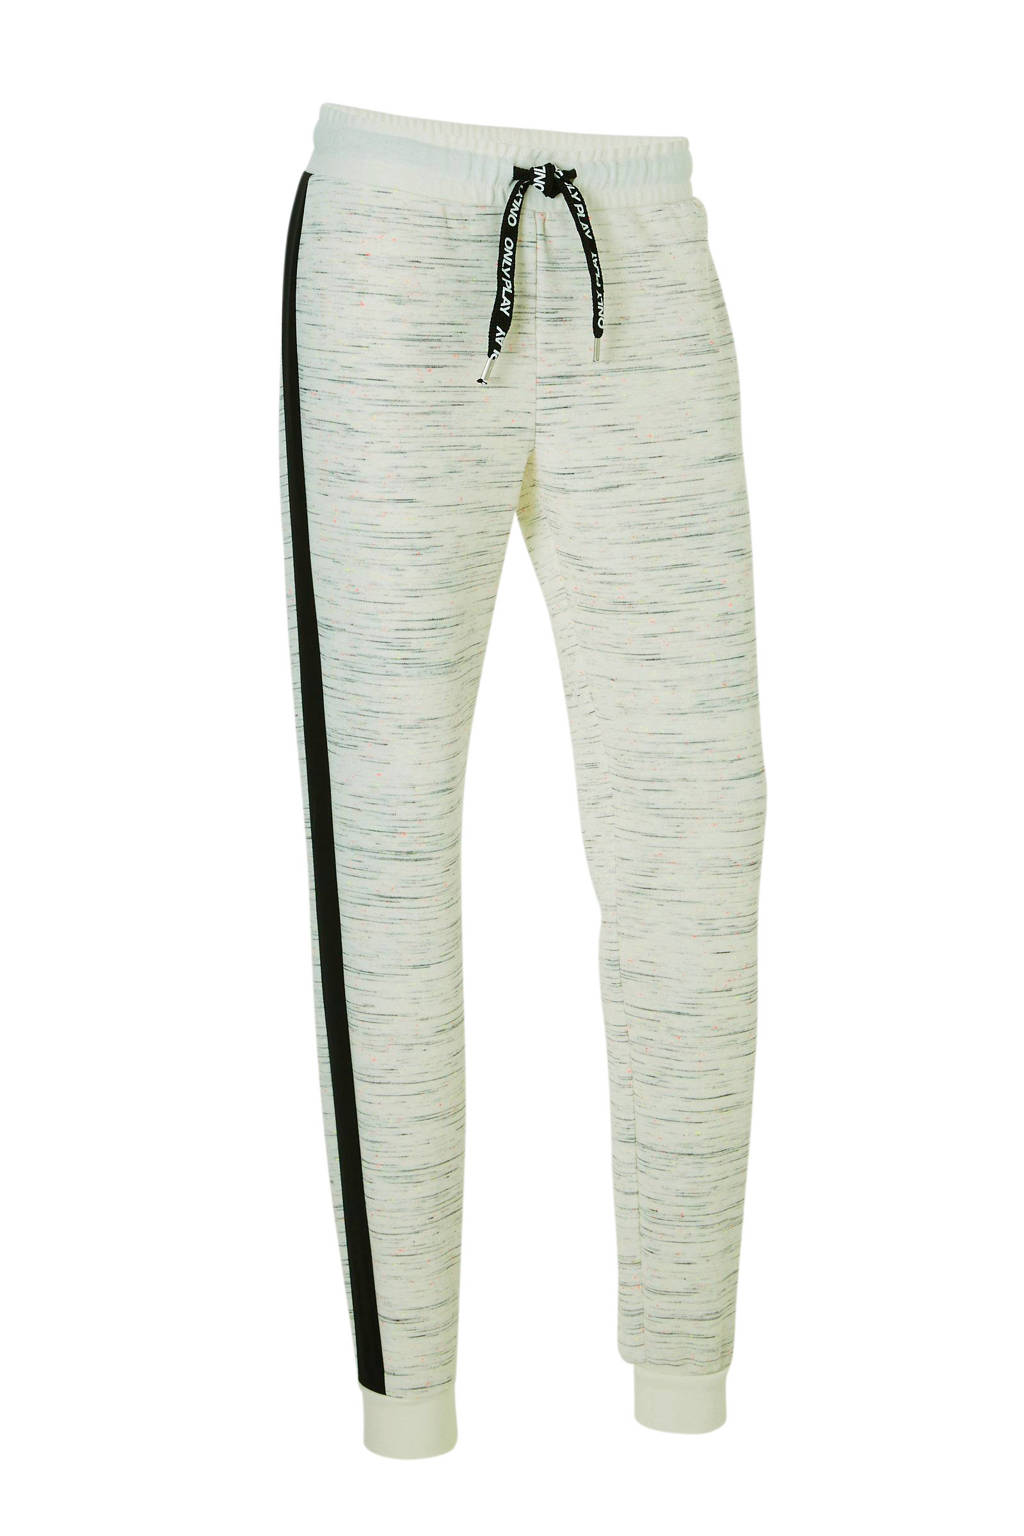 Only Play joggingbroek, Wit/zwart